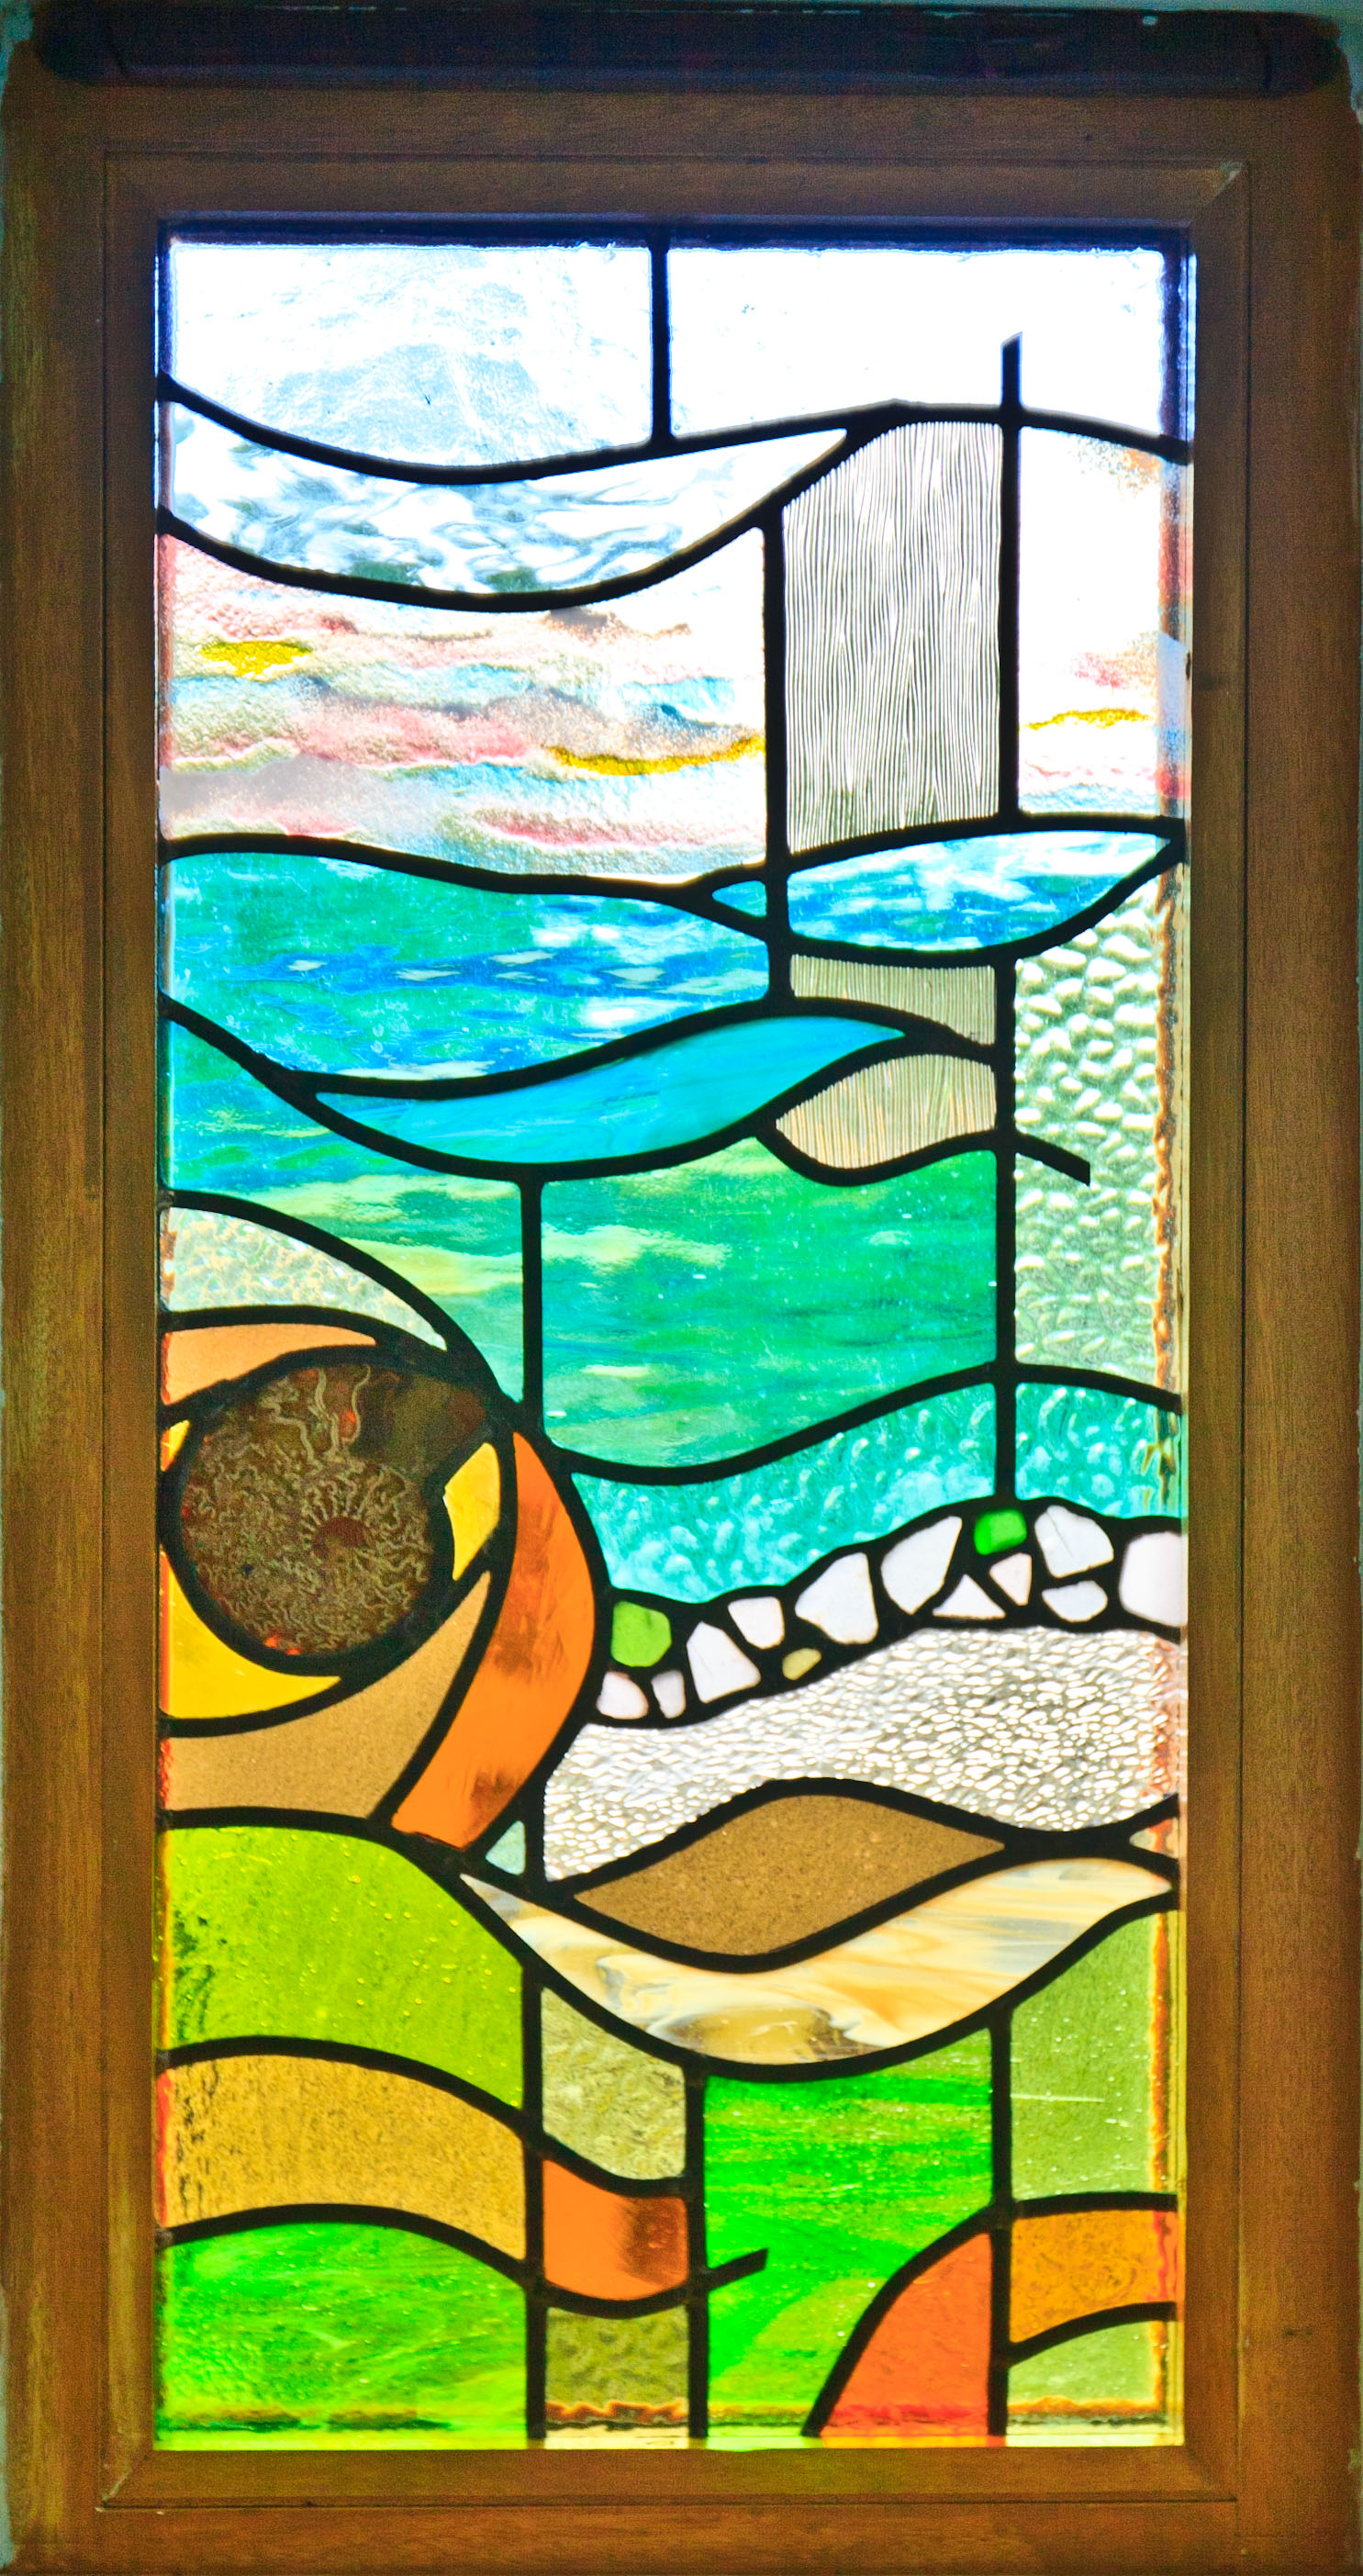 IMG_2159_Stained-glass-window-trimmed_Low-Res